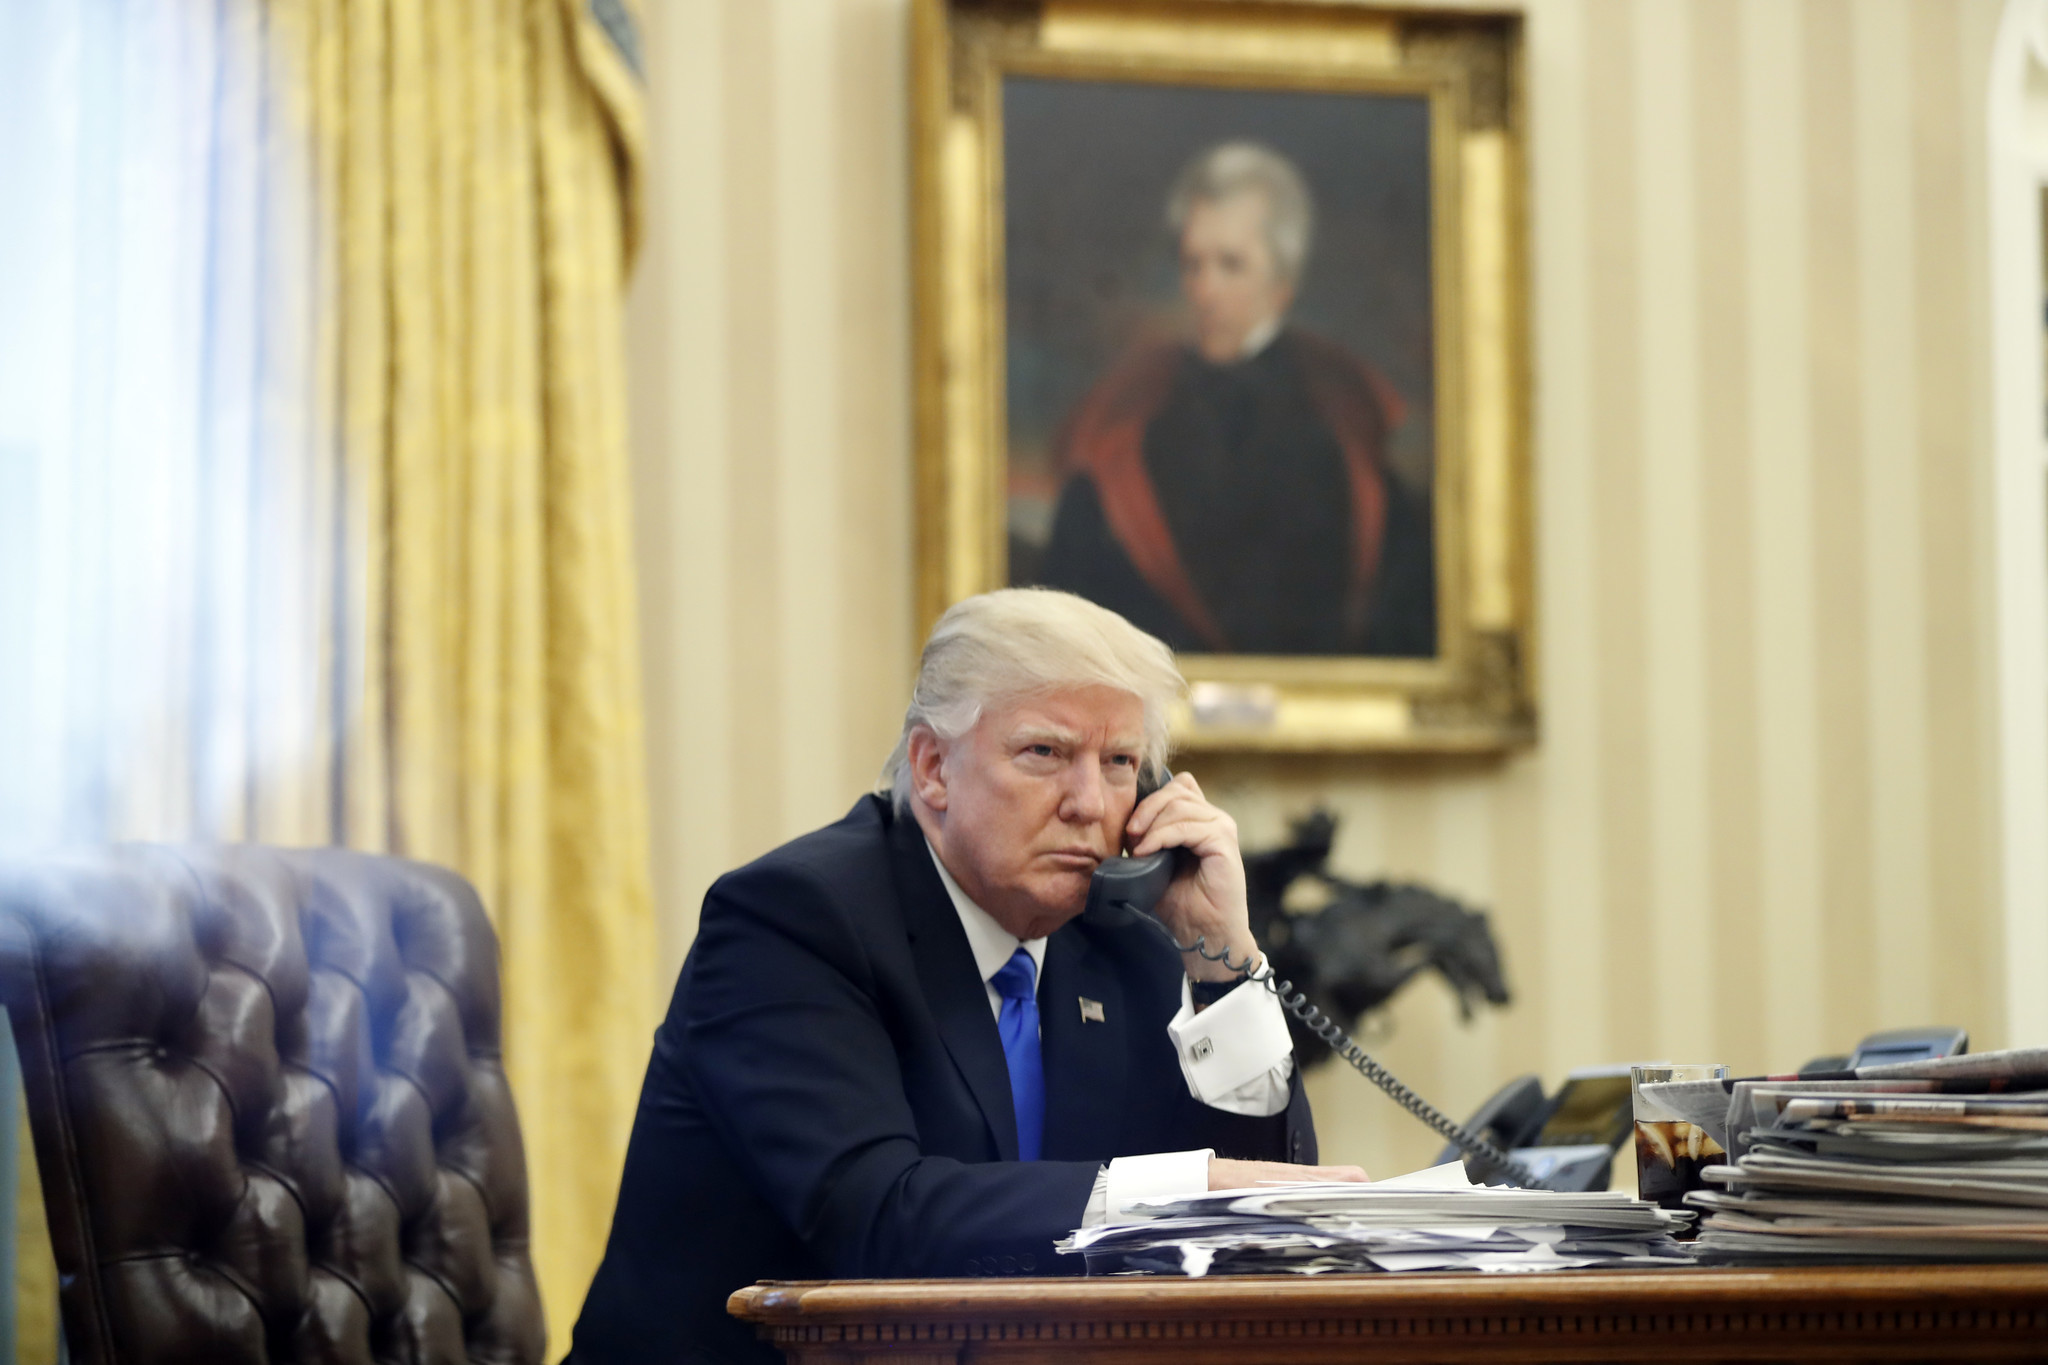 Trump has a long history of recording calls, according to former associates